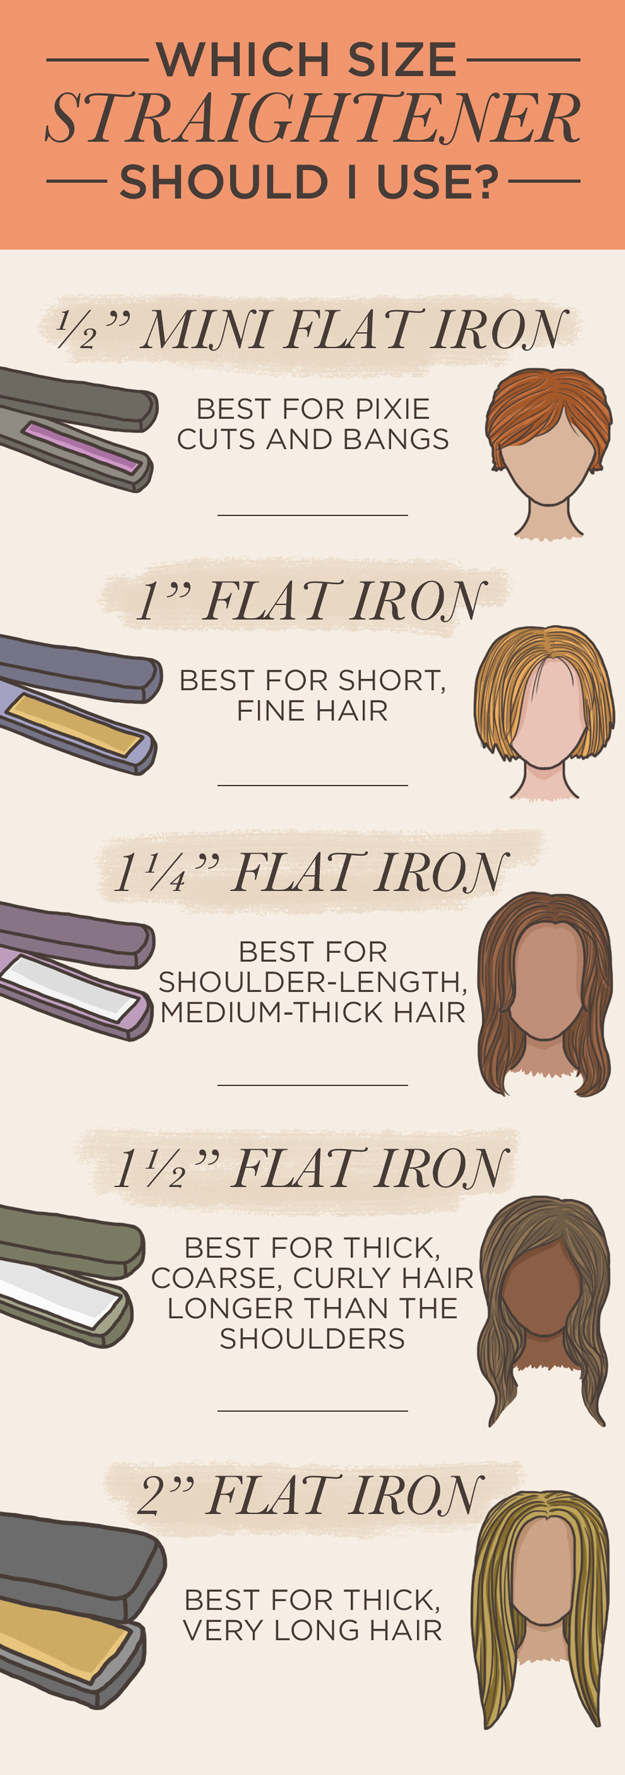 enhanced 5630 1435180821 1?downsize=715 *&output format=auto&output quality=auto 17 useful tricks for anyone who uses a hair straightener Chi Hair Straightener Official Website at couponss.co